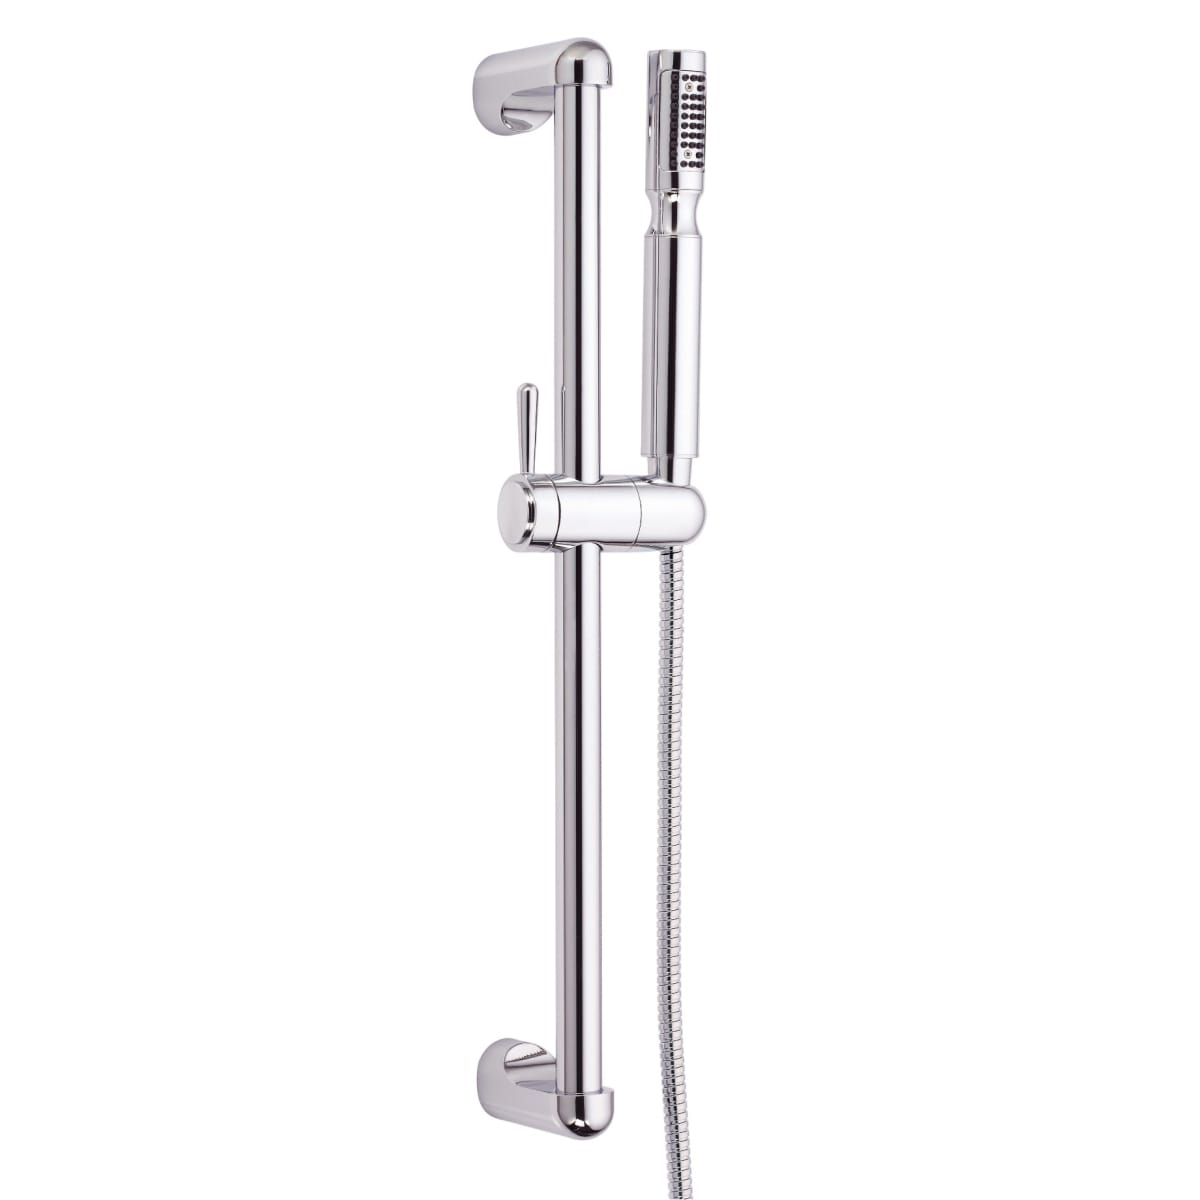 Danze D492100 Brushed Nickel Single Function Hand Shower 2.5-GPM Brand New BN